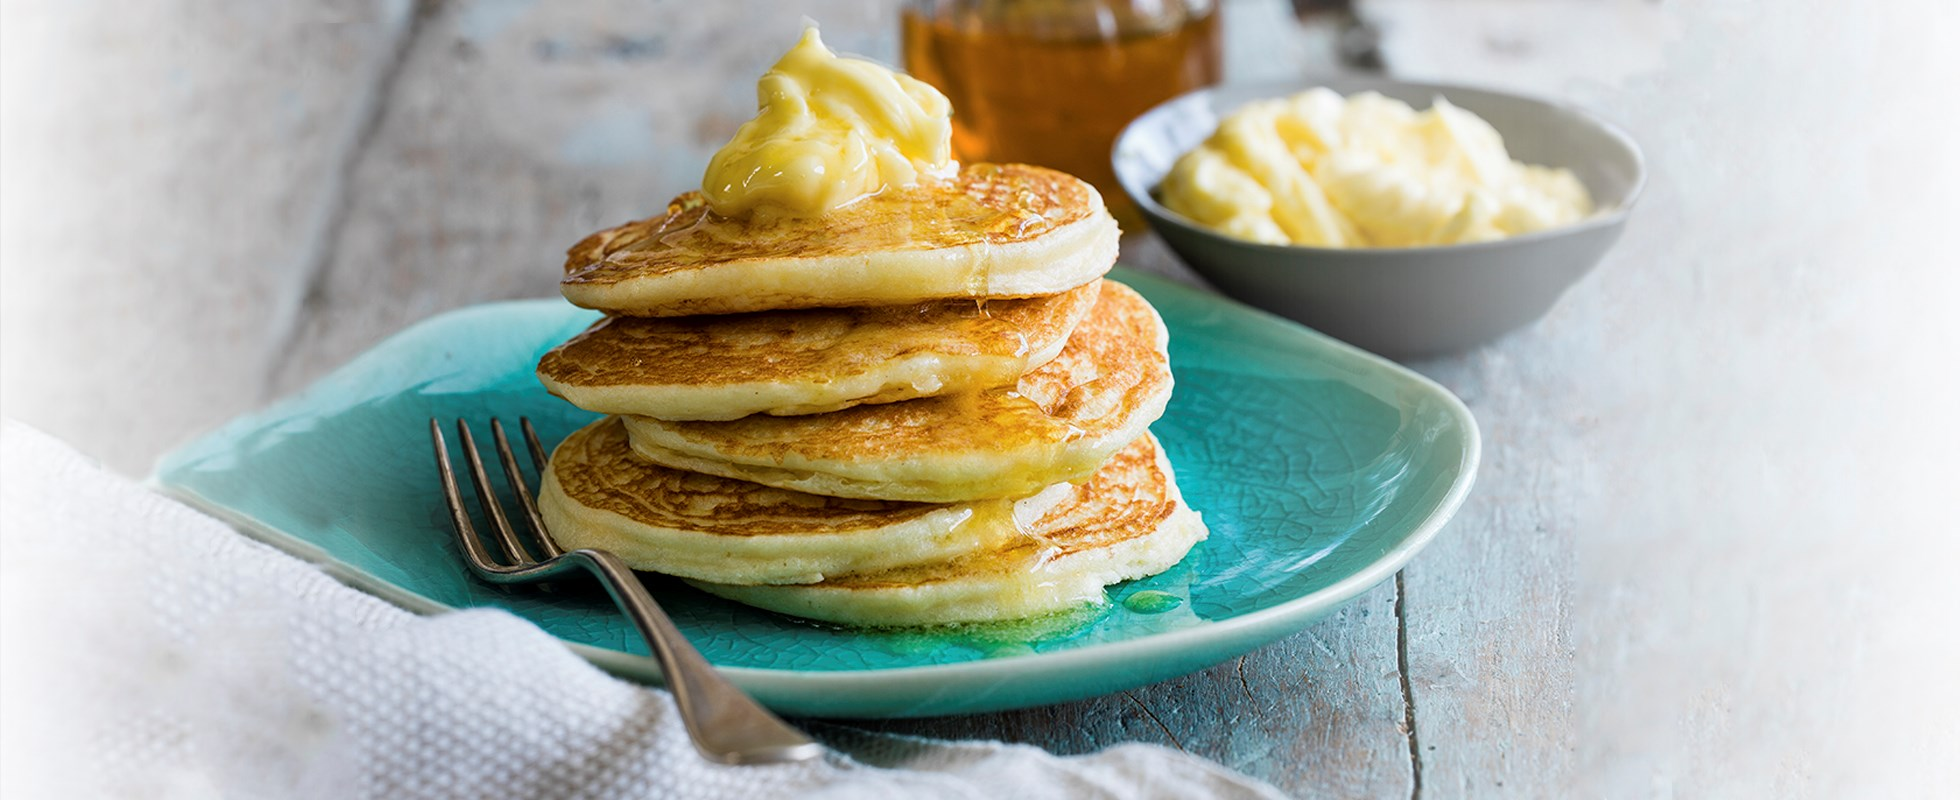 Fluffy Ricotta Pancake Recipe with Whipped Honey Butter